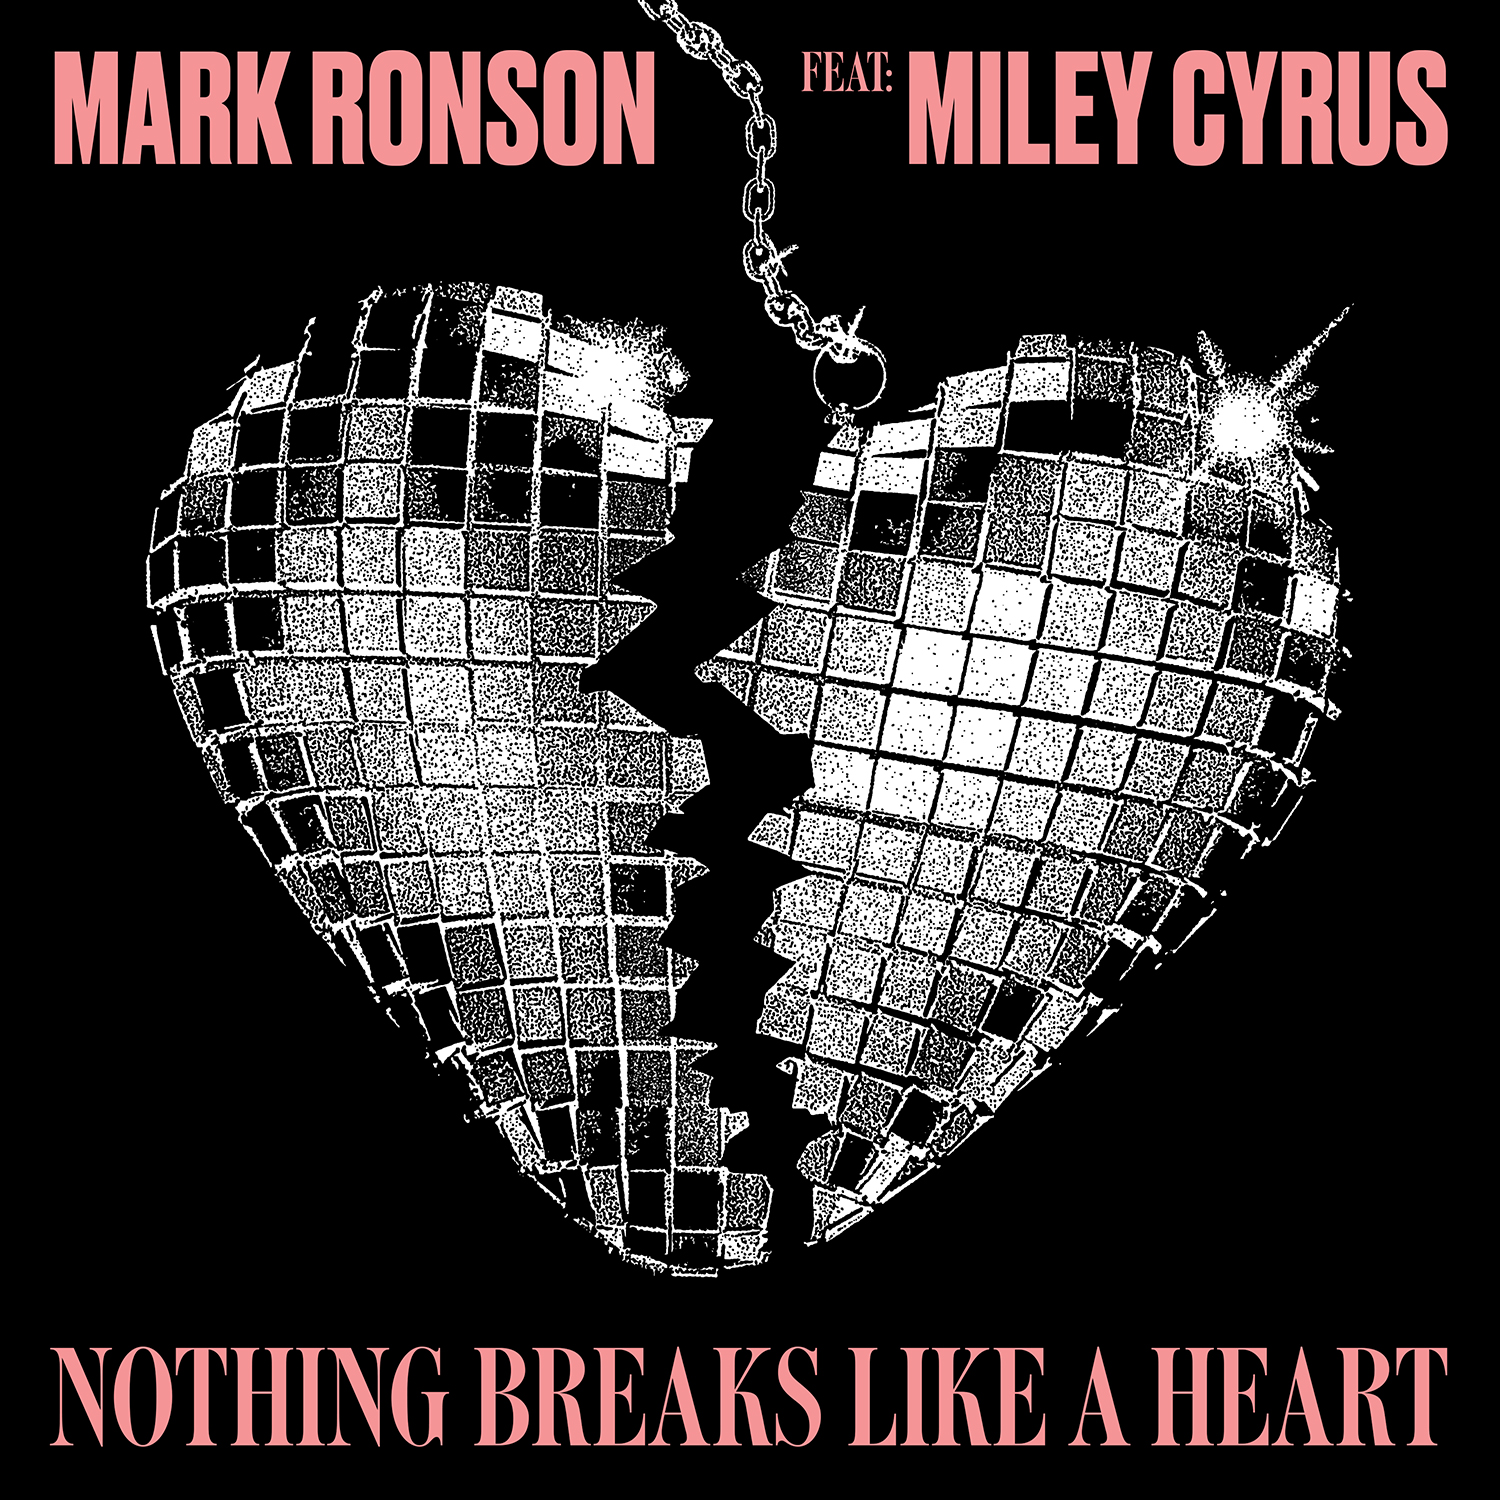 The cover art for 'Nothing Breaks Like A heart' shows a disco ball shaped like a broken heart.